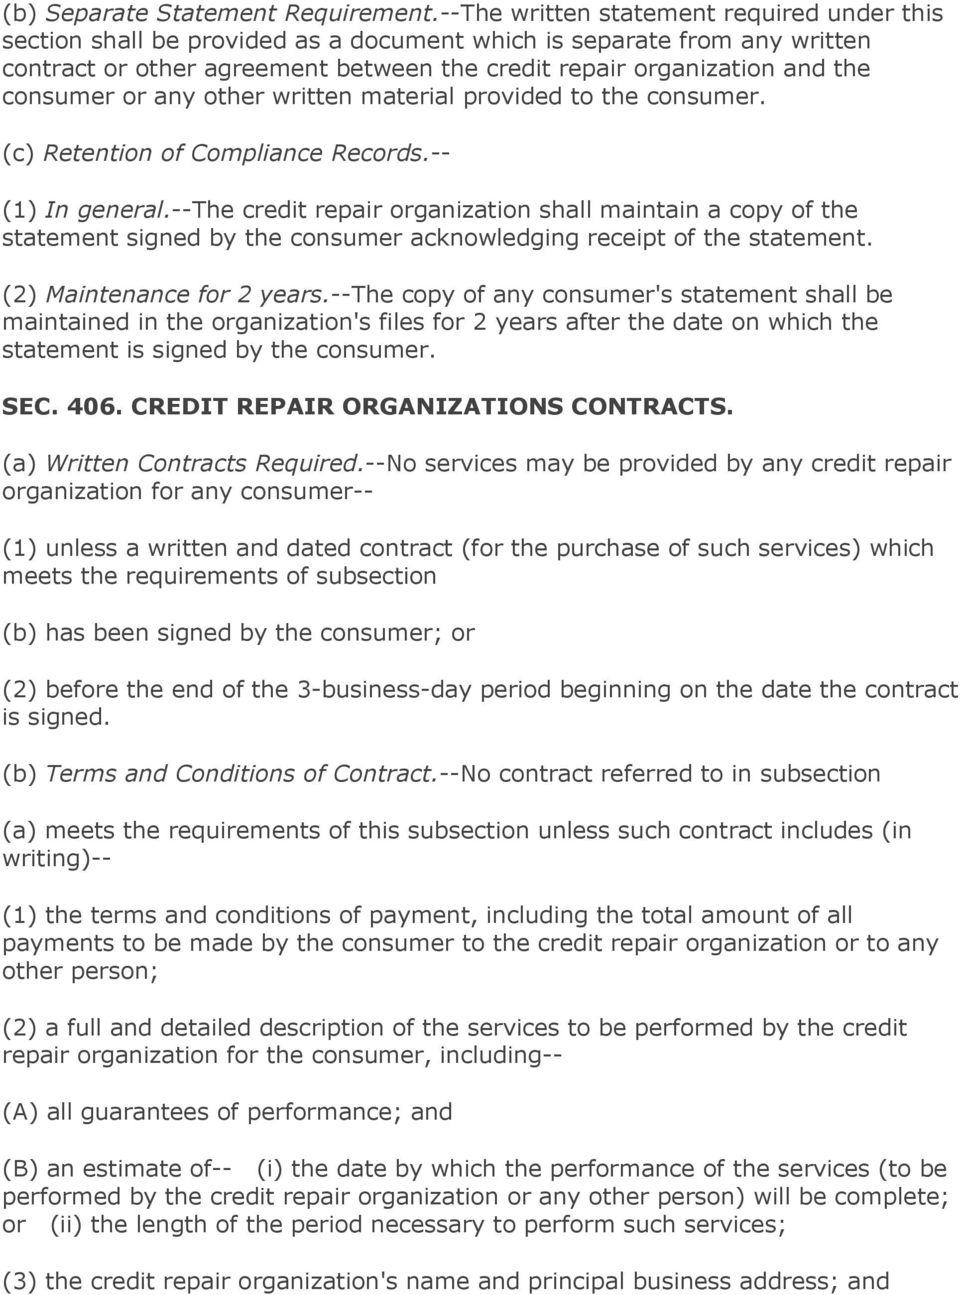 consumer or any other written material provided to the consumer. (c) Retention of Compliance Records.-- (1) In general.